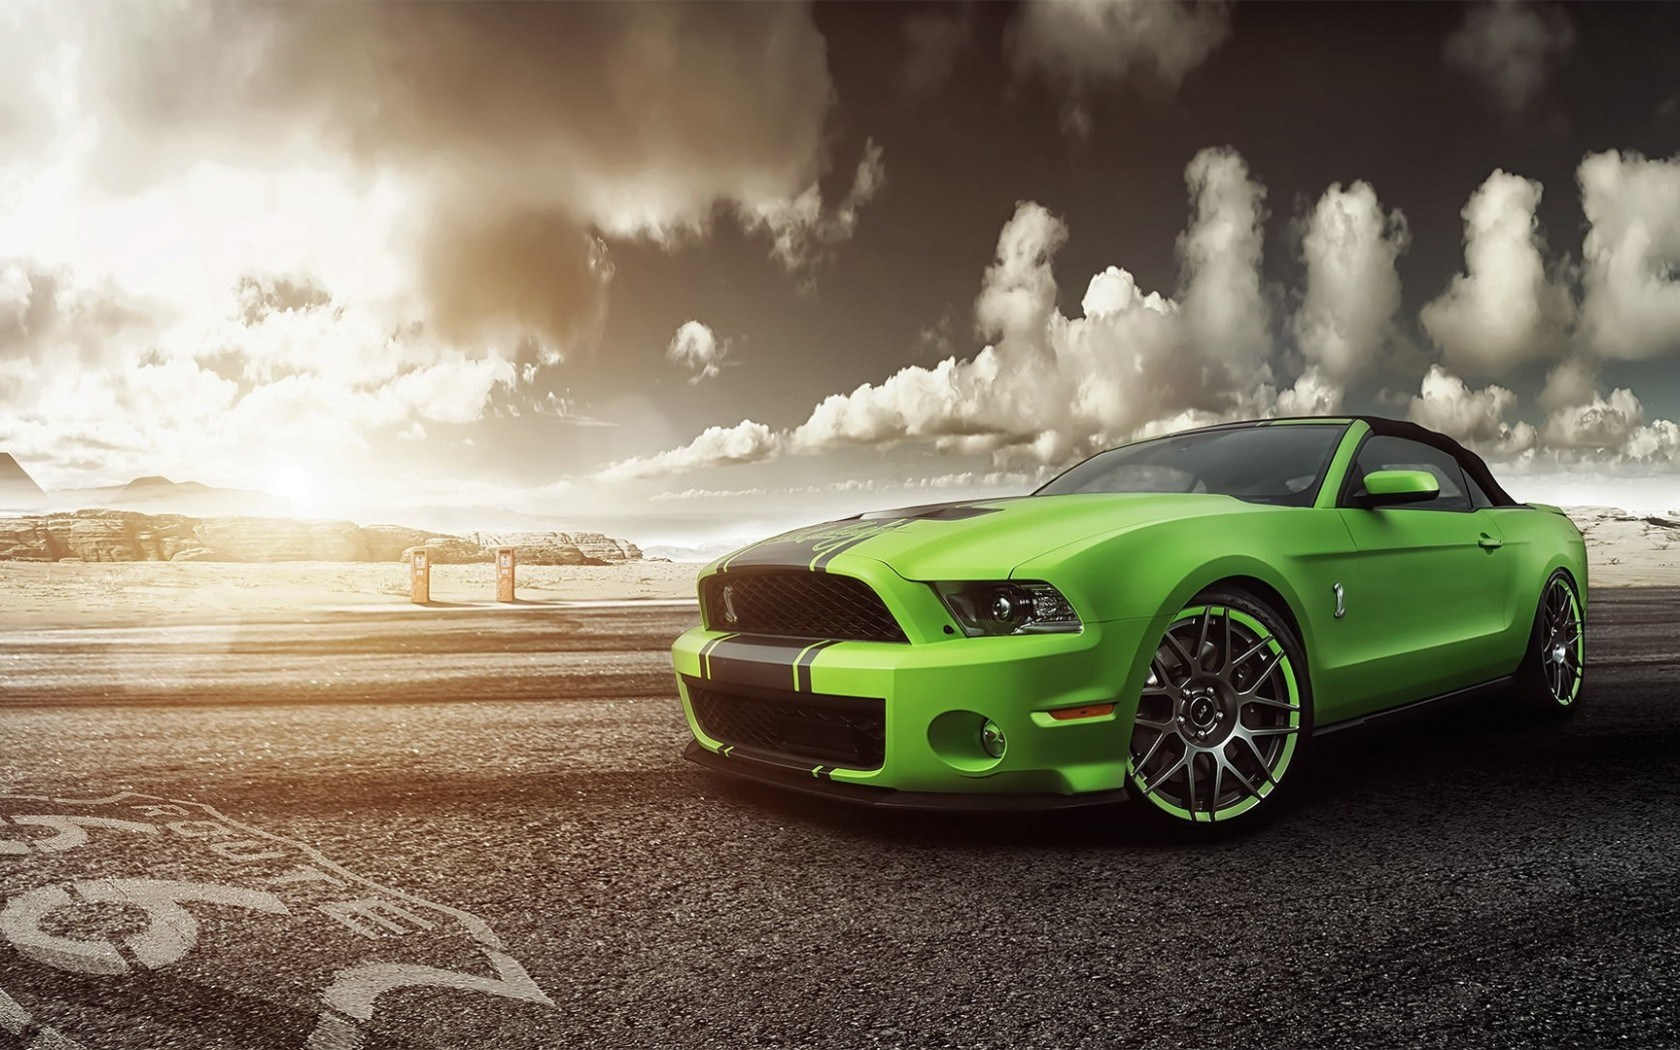 Cute Couples Cartoons Wallpapers Download Ford Mustang Shelby Gt500 Hd Wallpaper Gallery